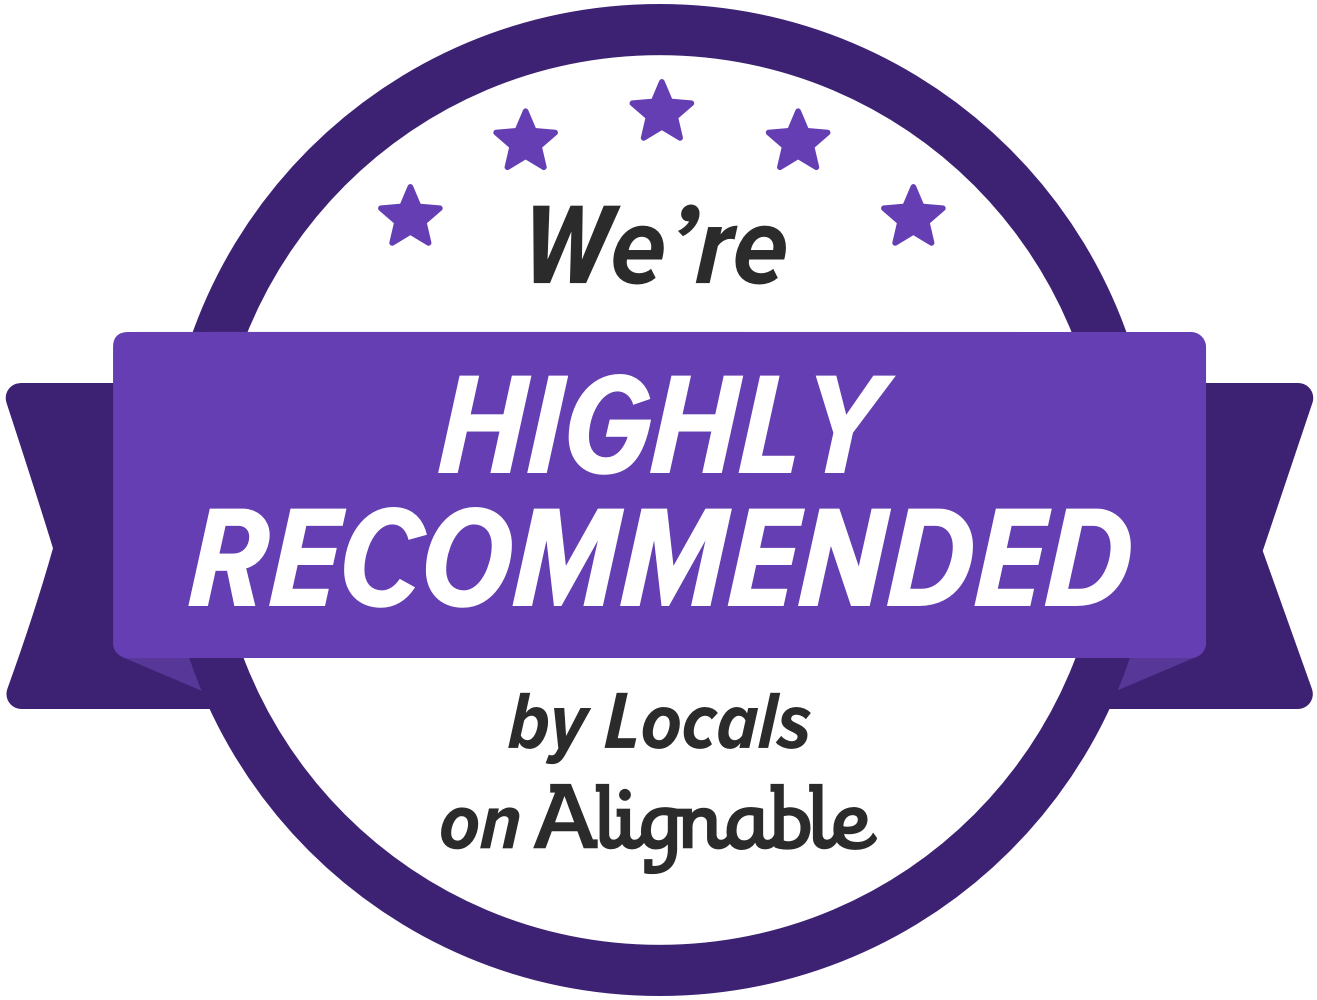 We're highly recommended!